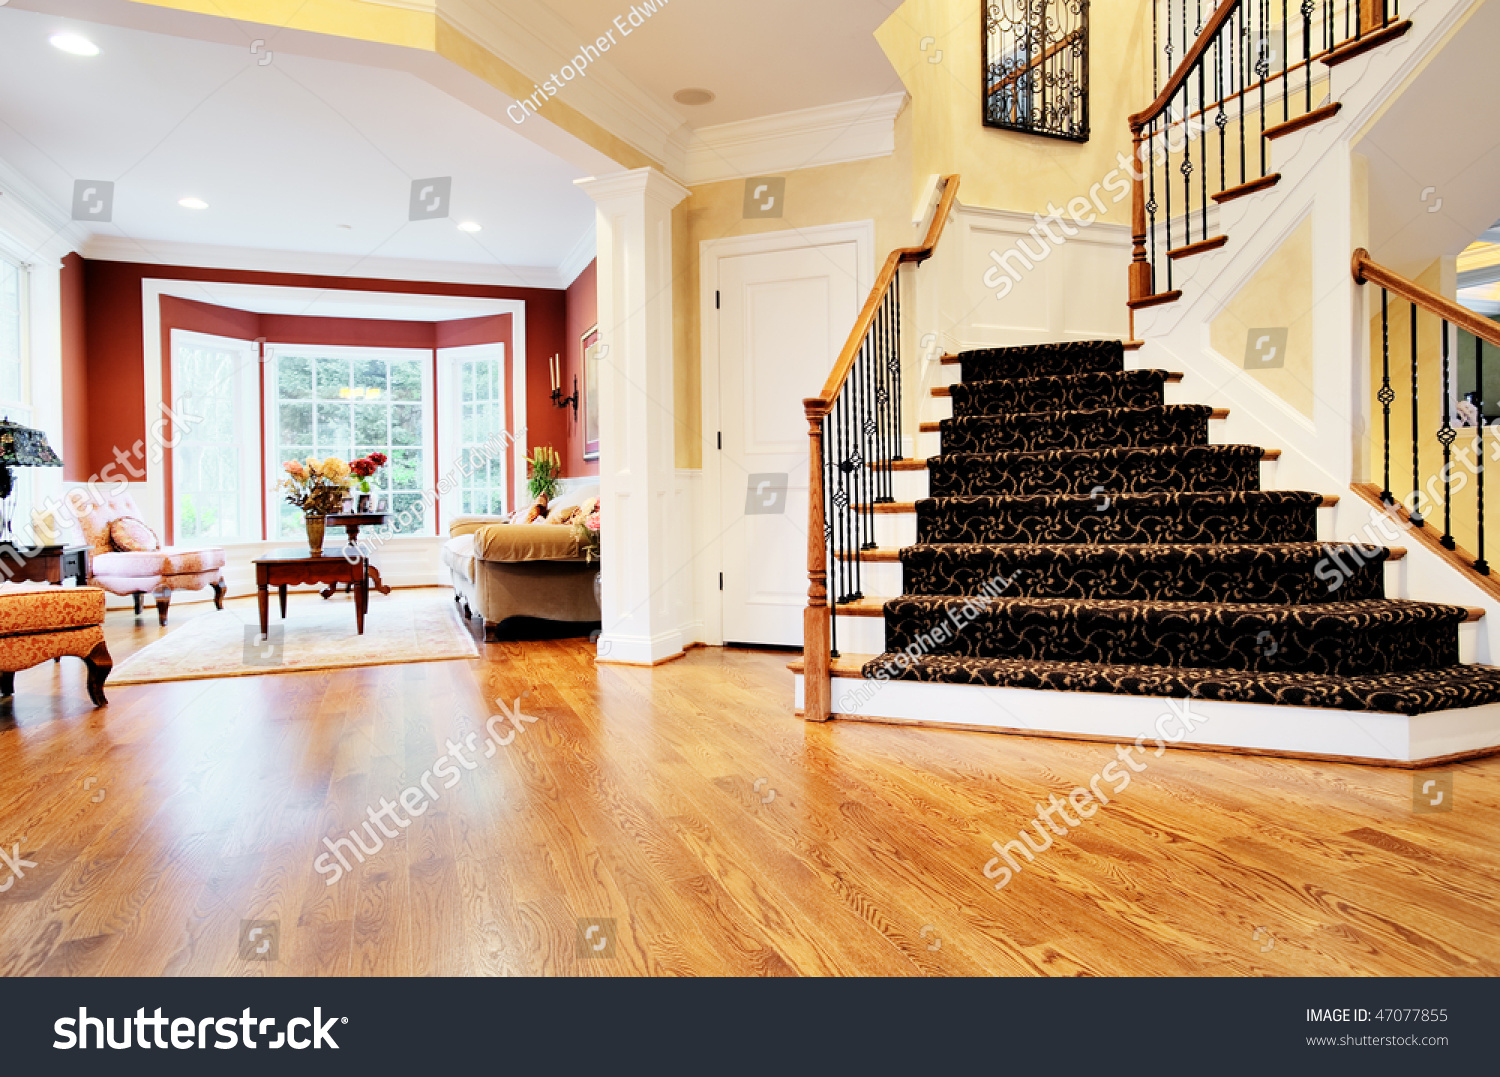 Open Foyer And Living Room : Open entryway with wood floor and staircase view of